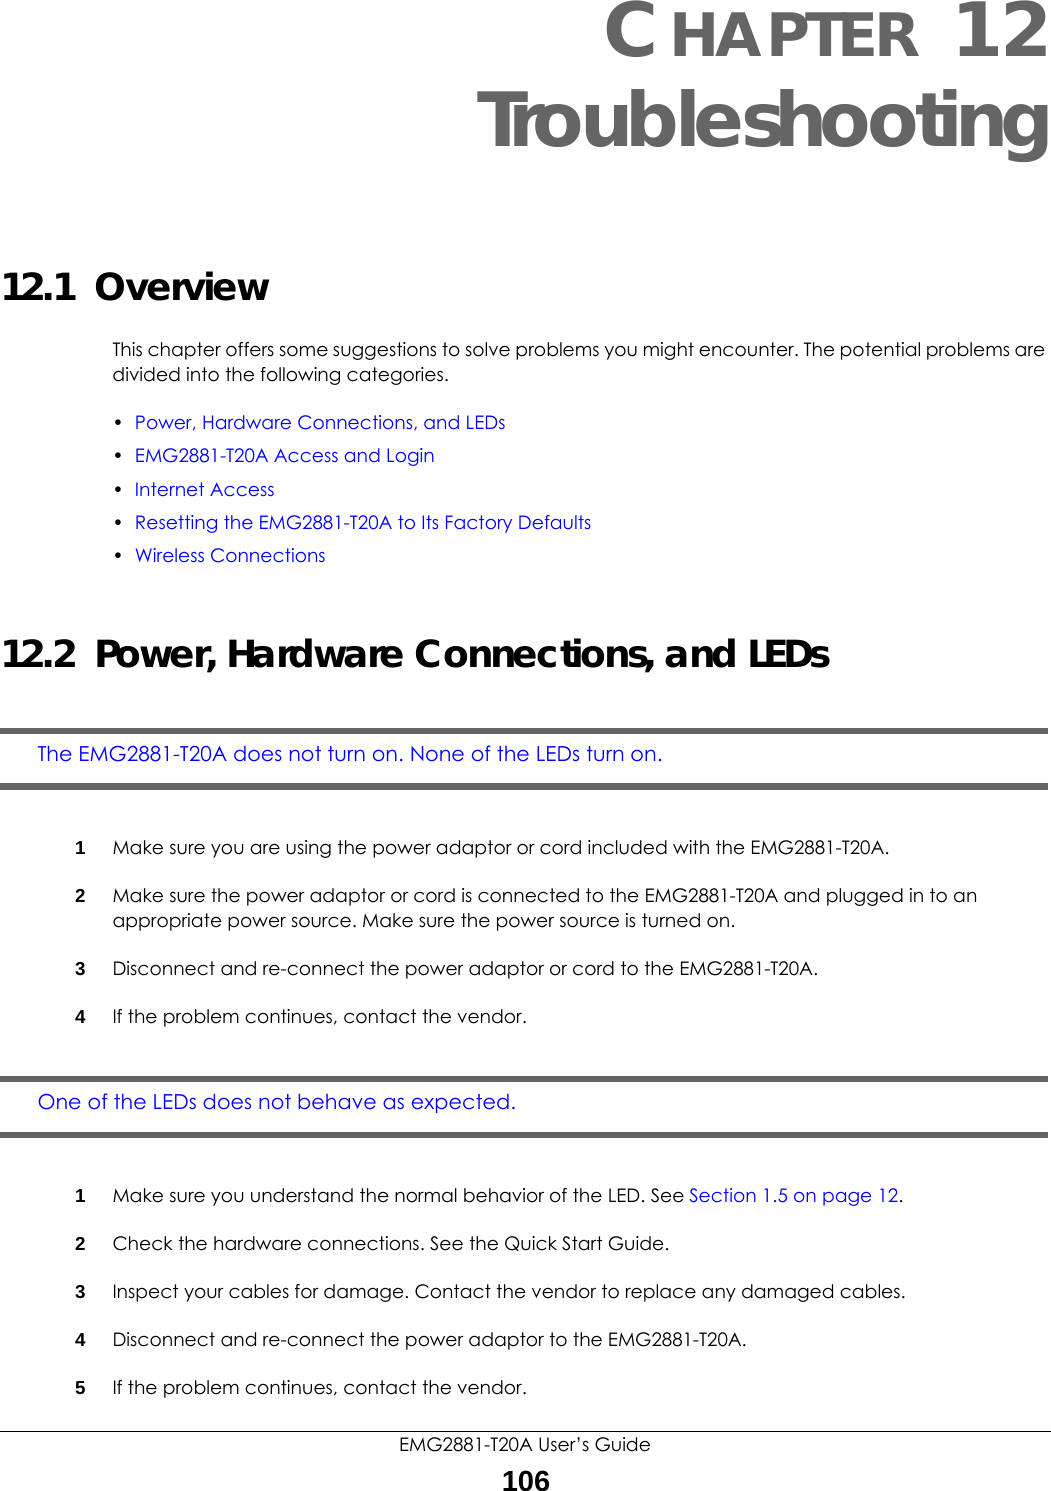 EMG2881-T20A User's Guide106CHAPTER 12Troubleshooting12.1  OverviewThis chapter offers some suggestions to solve problems you might encounter. The potential problems are divided into the following categories. •Power, Hardware Connections, and LEDs•EMG2881-T20A Access and Login•Internet Access•Resetting the EMG2881-T20A to Its Factory Defaults•Wireless Connections12.2  Power, Hardware Connections, and LEDsThe EMG2881-T20A does not turn on. None of the LEDs turn on.1Make sure you are using the power adaptor or cord included with the EMG2881-T20A.2Make sure the power adaptor or cord is connected to the EMG2881-T20A and plugged in to an appropriate power source. Make sure the power source is turned on.3Disconnect and re-connect the power adaptor or cord to the EMG2881-T20A.4If the problem continues, contact the vendor.One of the LEDs does not behave as expected.1Make sure you understand the normal behavior of the LED. See Section 1.5 on page 12.2Check the hardware connections. See the Quick Start Guide. 3Inspect your cables for damage. Contact the vendor to replace any damaged cables.4Disconnect and re-connect the power adaptor to the EMG2881-T20A. 5If the problem continues, contact the vendor.